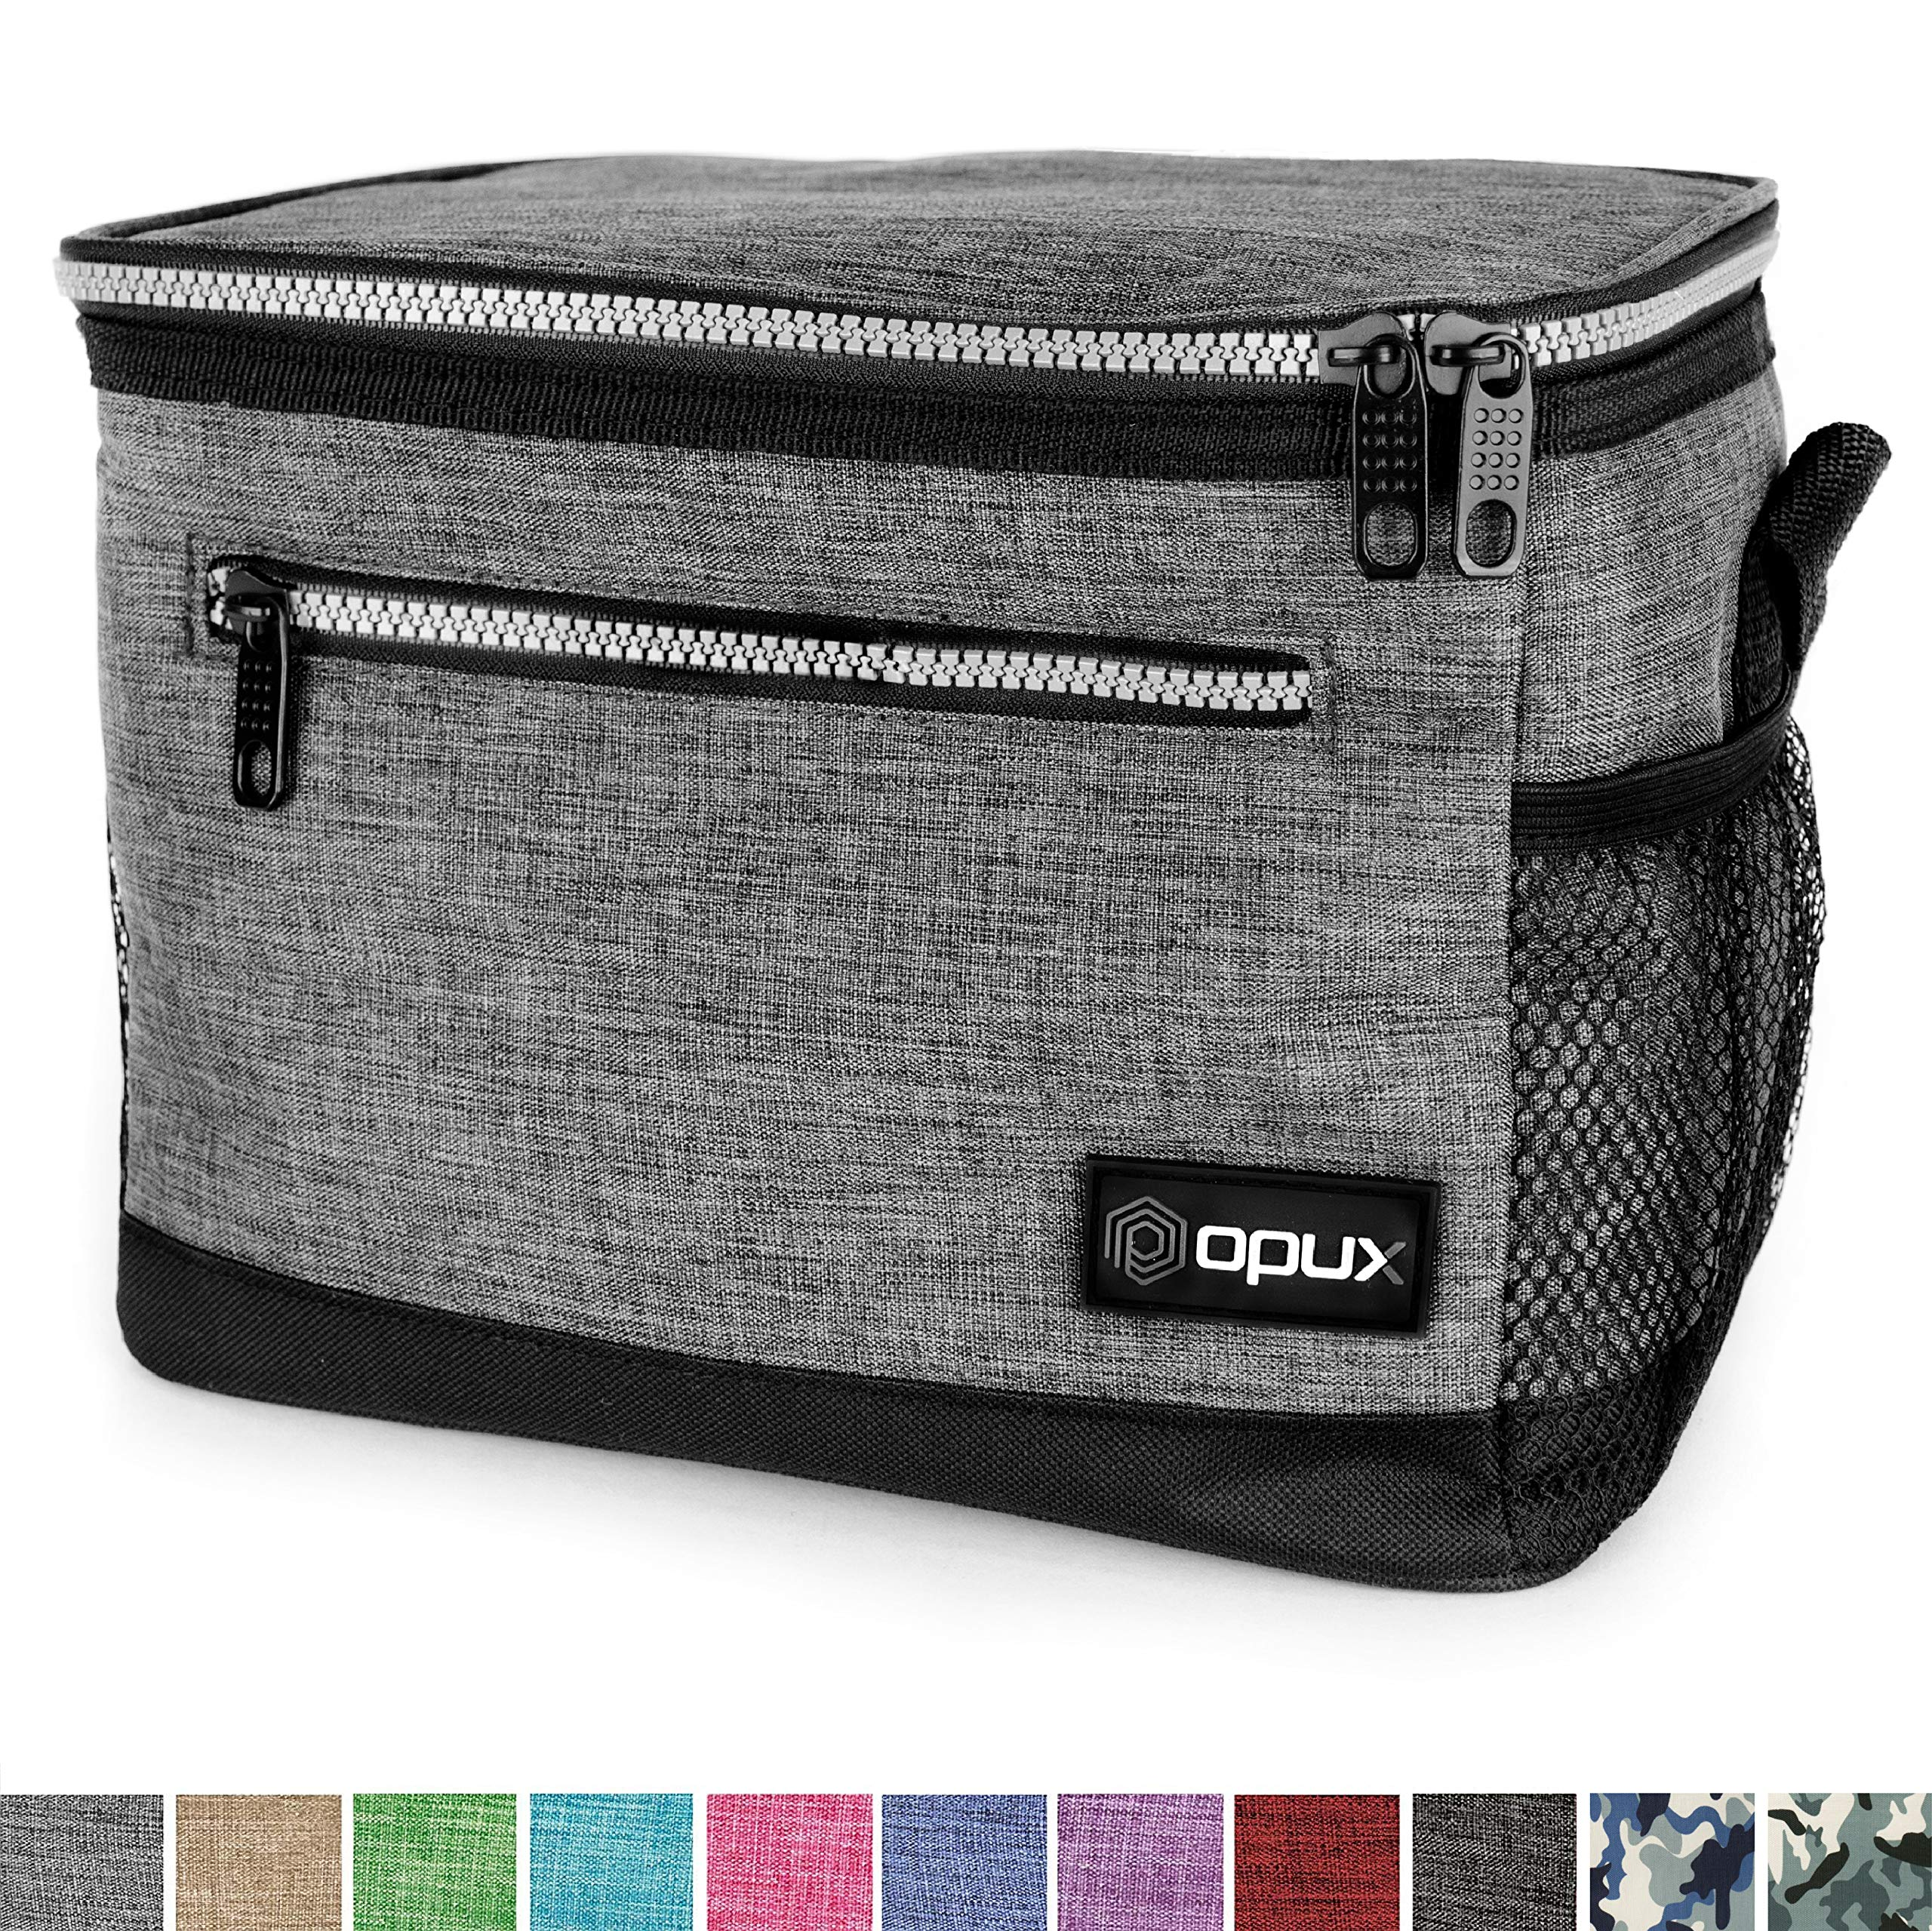 OPUX Premium Lunch Box, Insulated Lunch Bag for Men Women Adult | Durable School Lunch Pail for Boys, Girls, Kids | Soft Leakproof Medium Lunch Cooler Tote for Work Office | Fits 8 Cans (Heather Grey) by OPUX